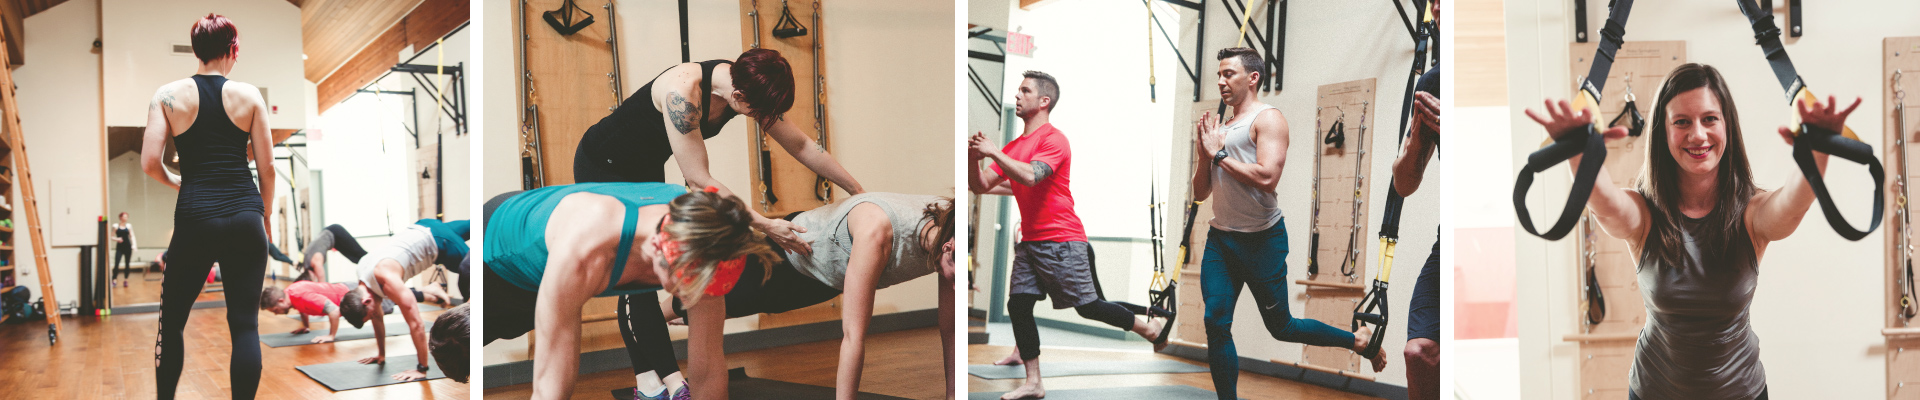 TRX Fitness Classes at Studio Blue Pilates in Downtown Portland Oregon